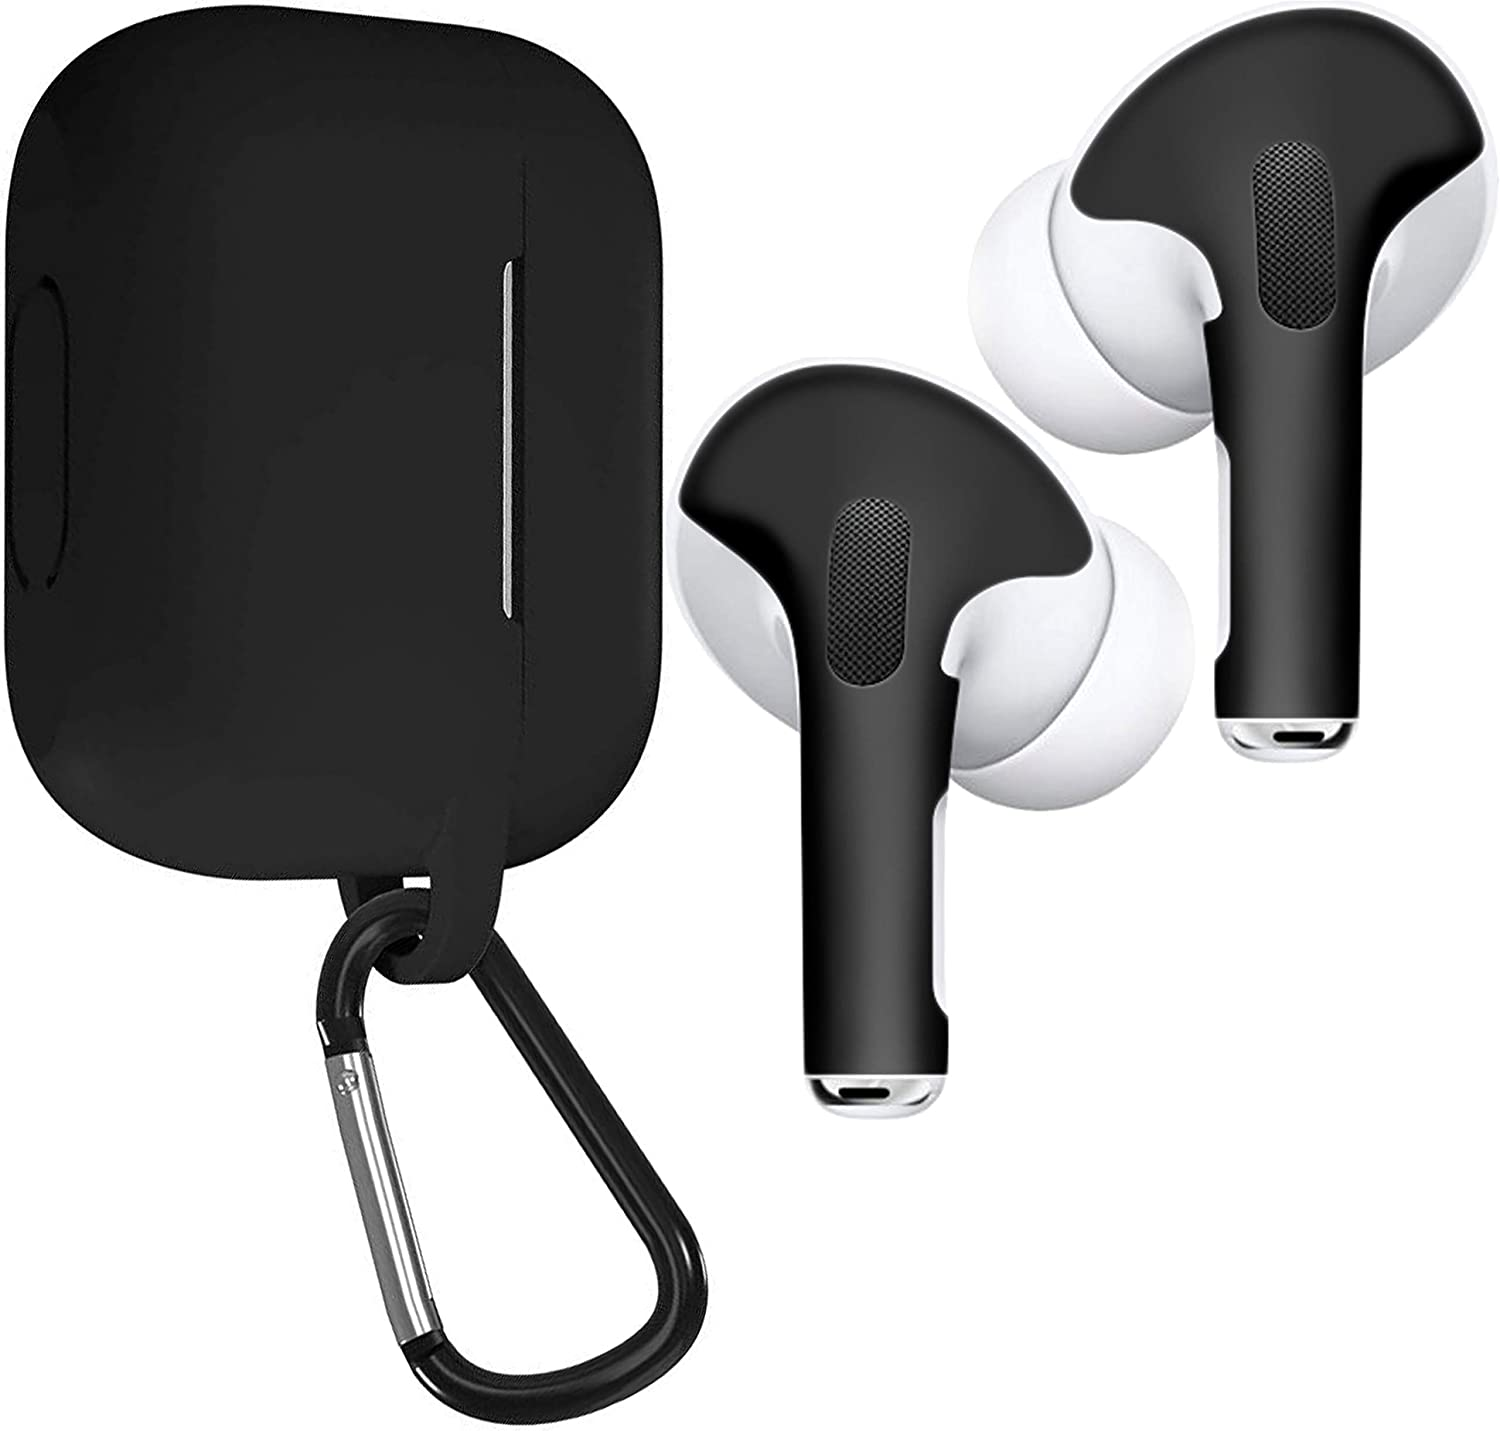 Matte Black Protective Wraps Stickers to Cover Air Pods APSkins Skins and Silicone Case Cover for AirPods Pro Compatible Sticker Vinyl Wrap Decal with Apple Air Pod Accessories